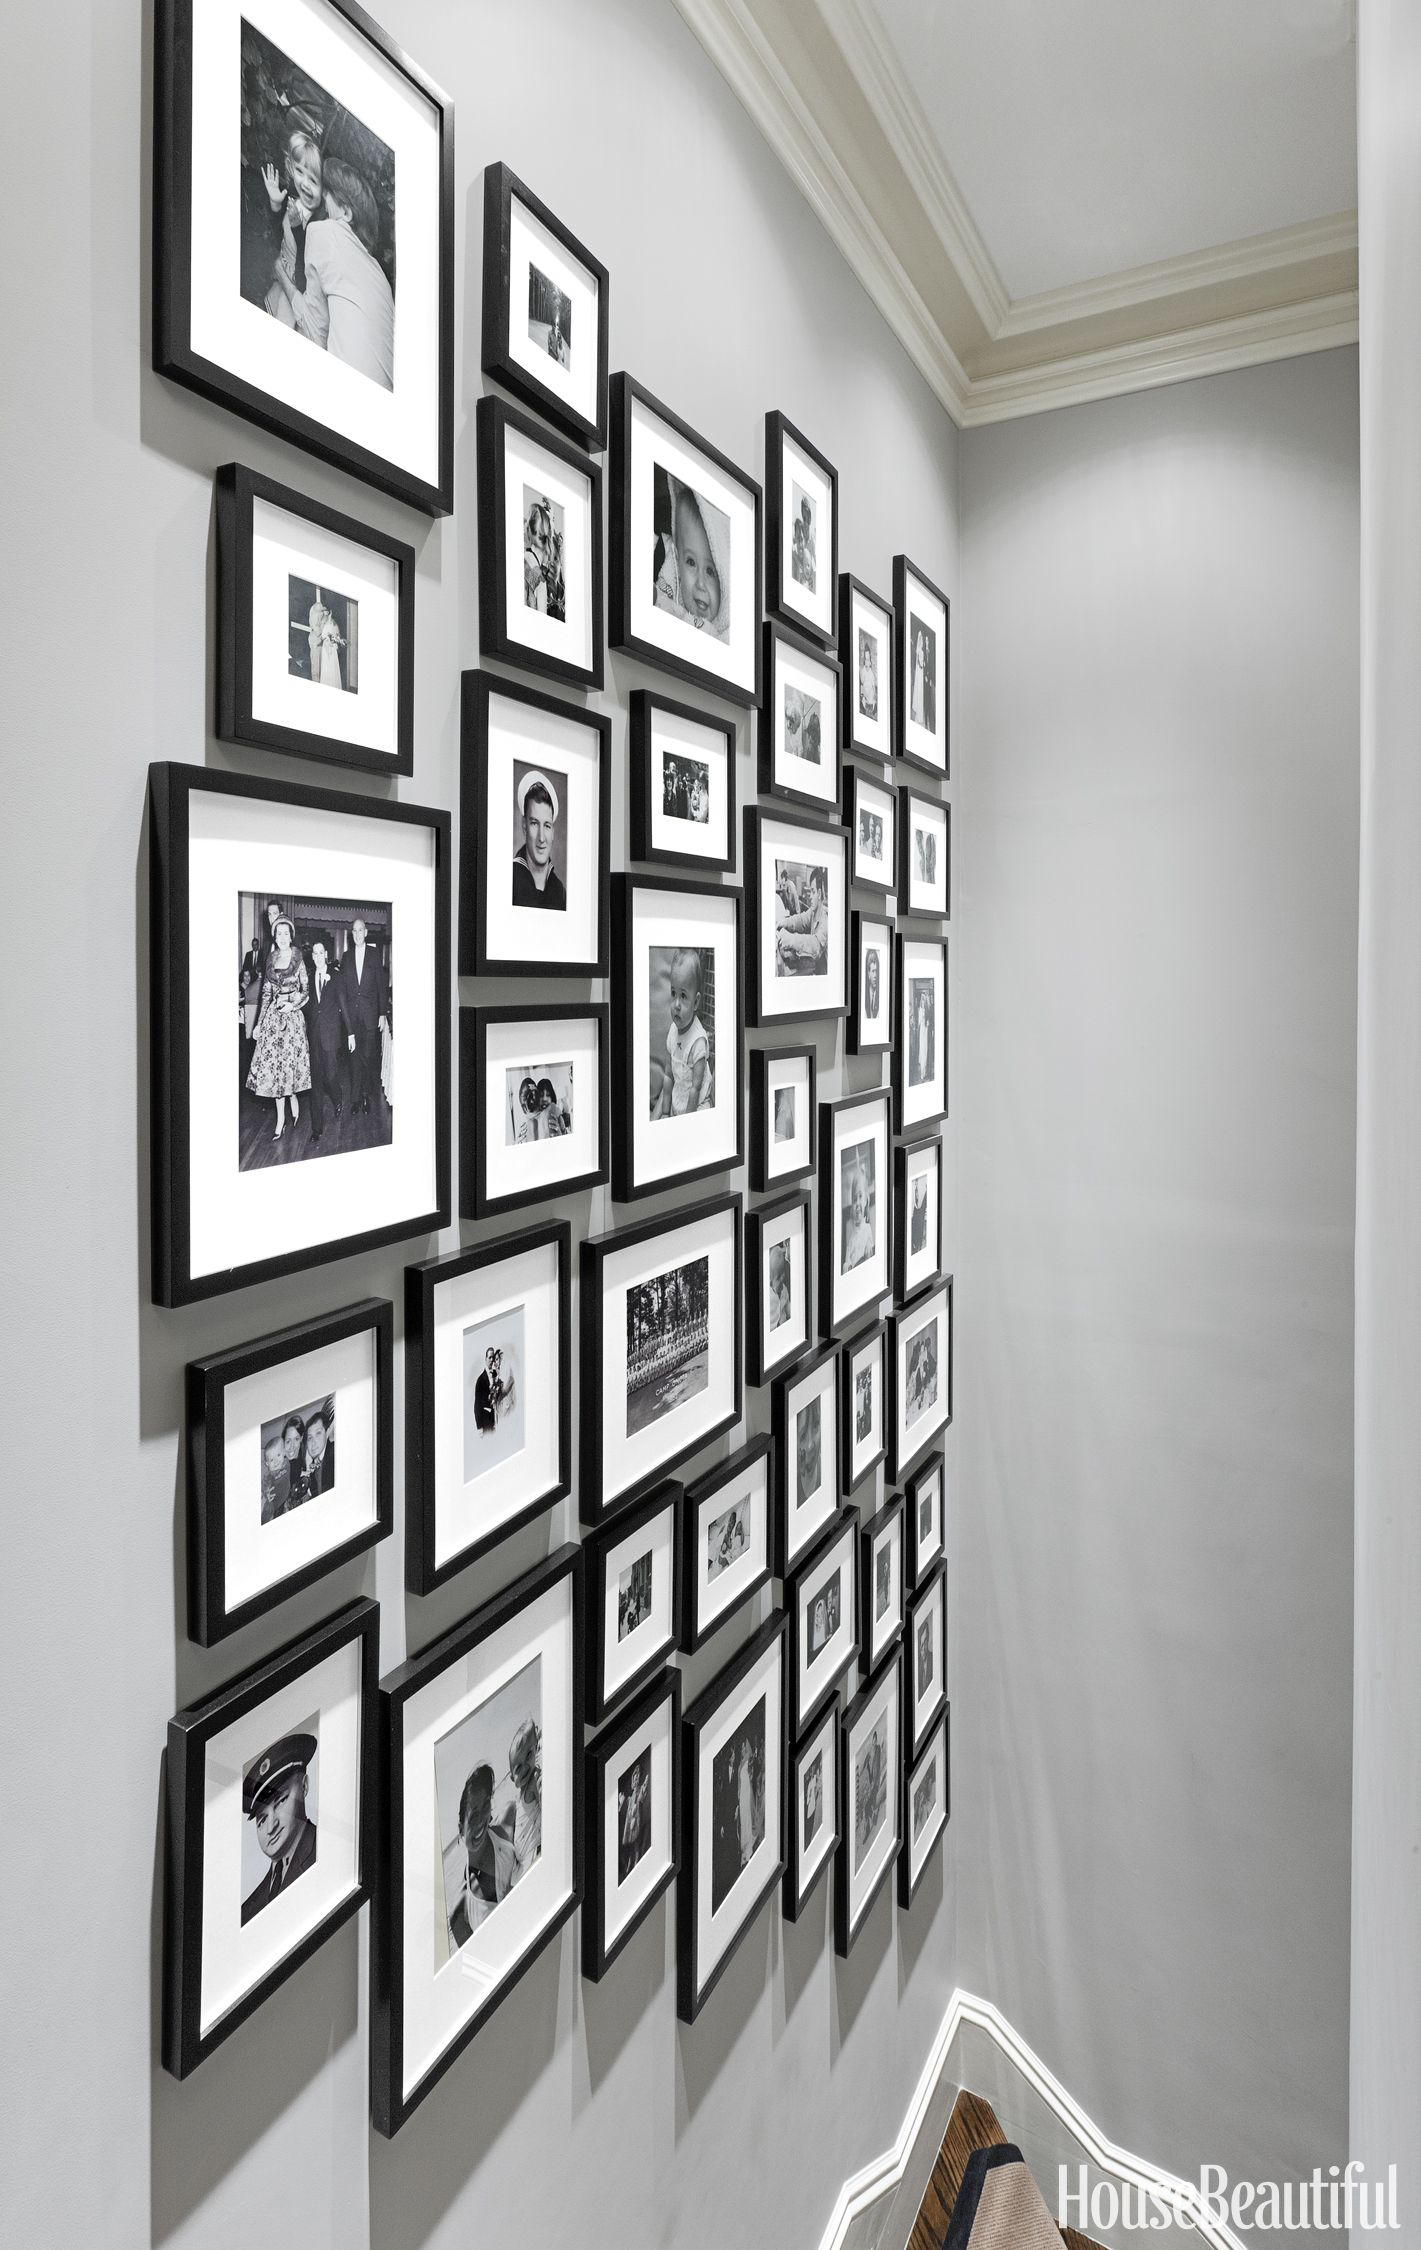 & 20+ Best Wall Art Ideas for Every Room - Cool Wall Decor and Prints